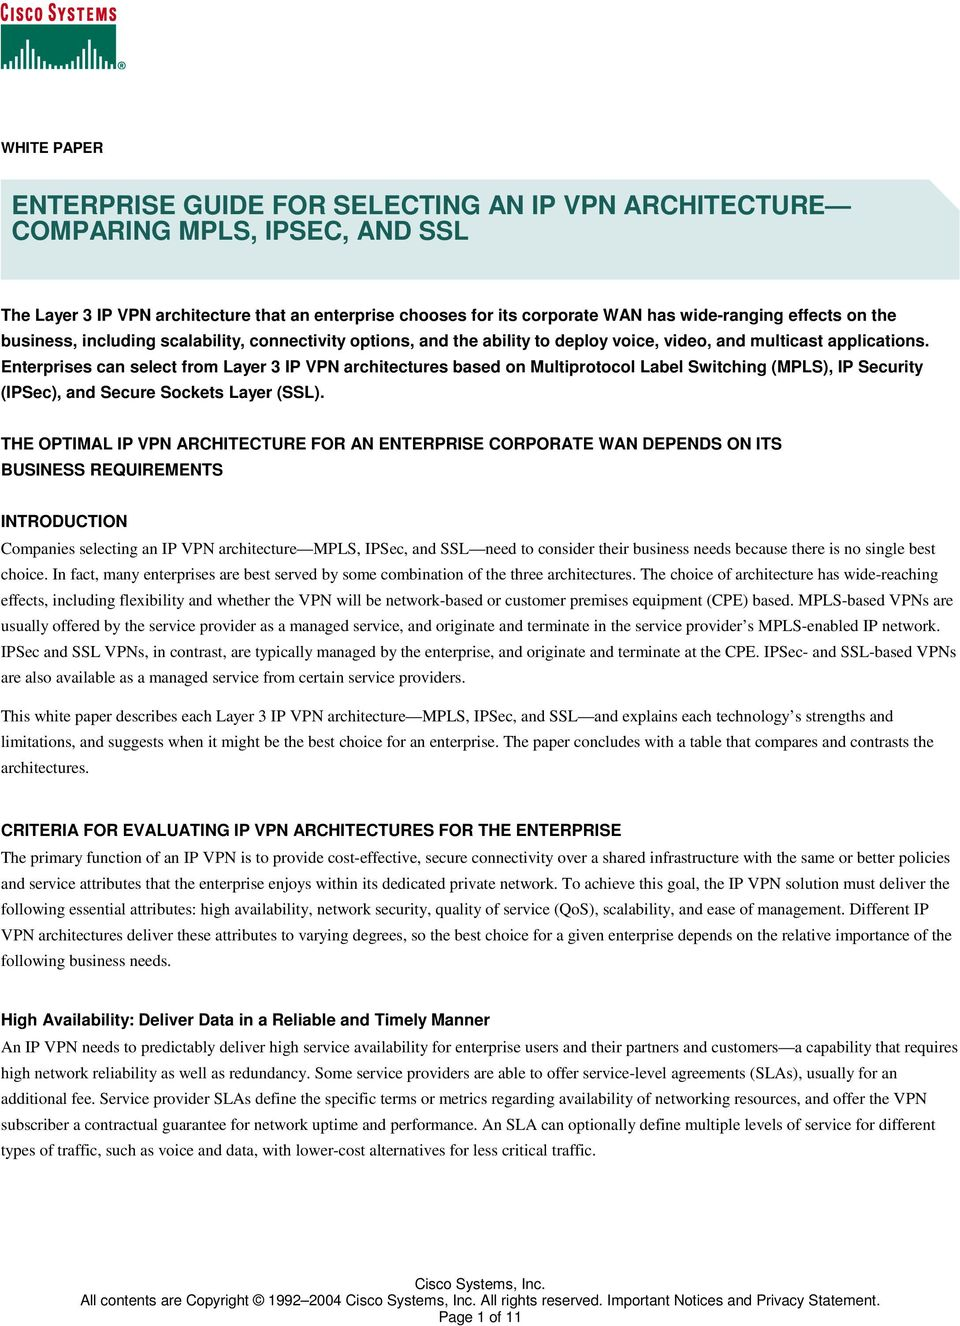 Enterprises can select from Layer 3 IP VPN architectures based on Multiprotocol Label Switching (MPLS), IP Security (IPSec), and Secure Sockets Layer (SSL).